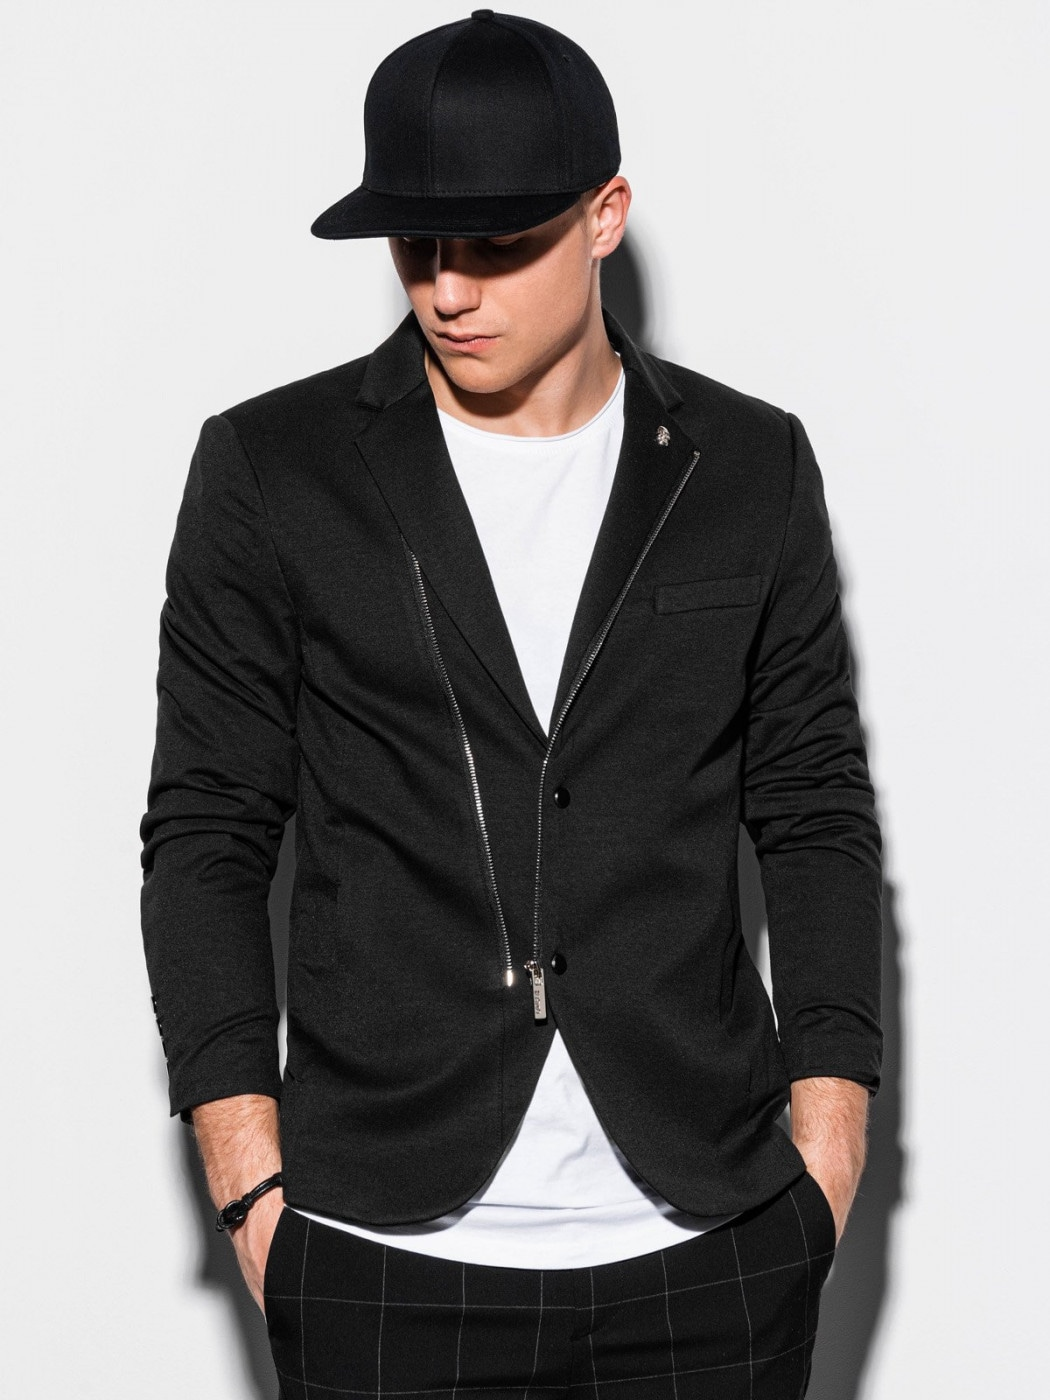 Ombre Clothing Men's casual blazer jacket M160